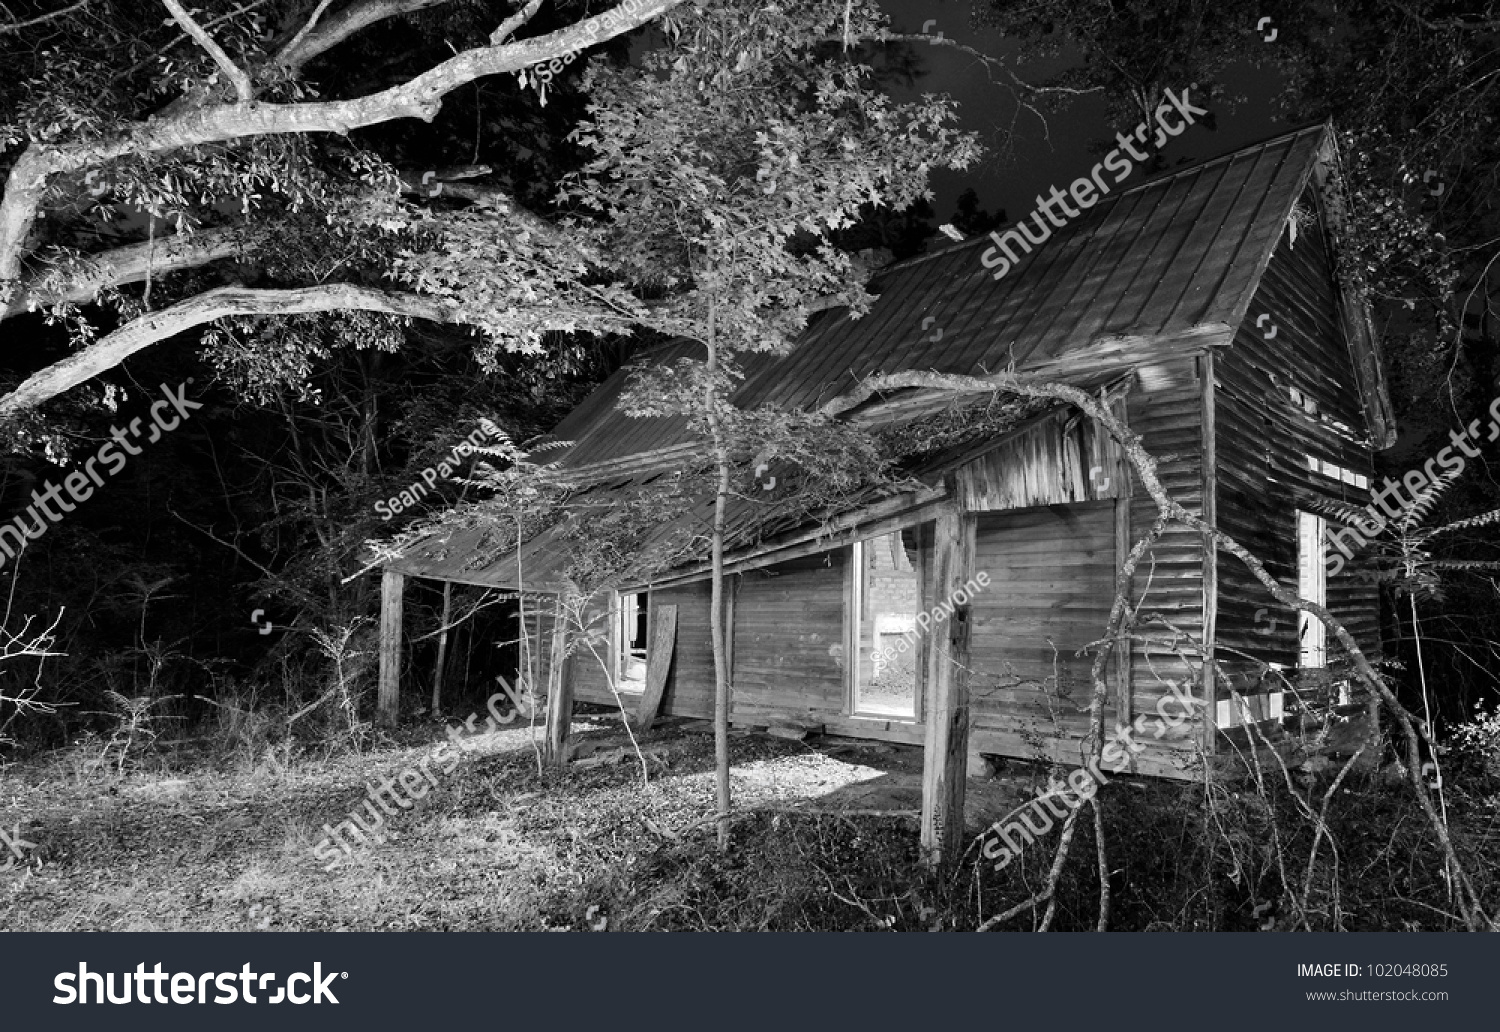 Exterior Of An Old Abandoned House At Night Stock Photo ...